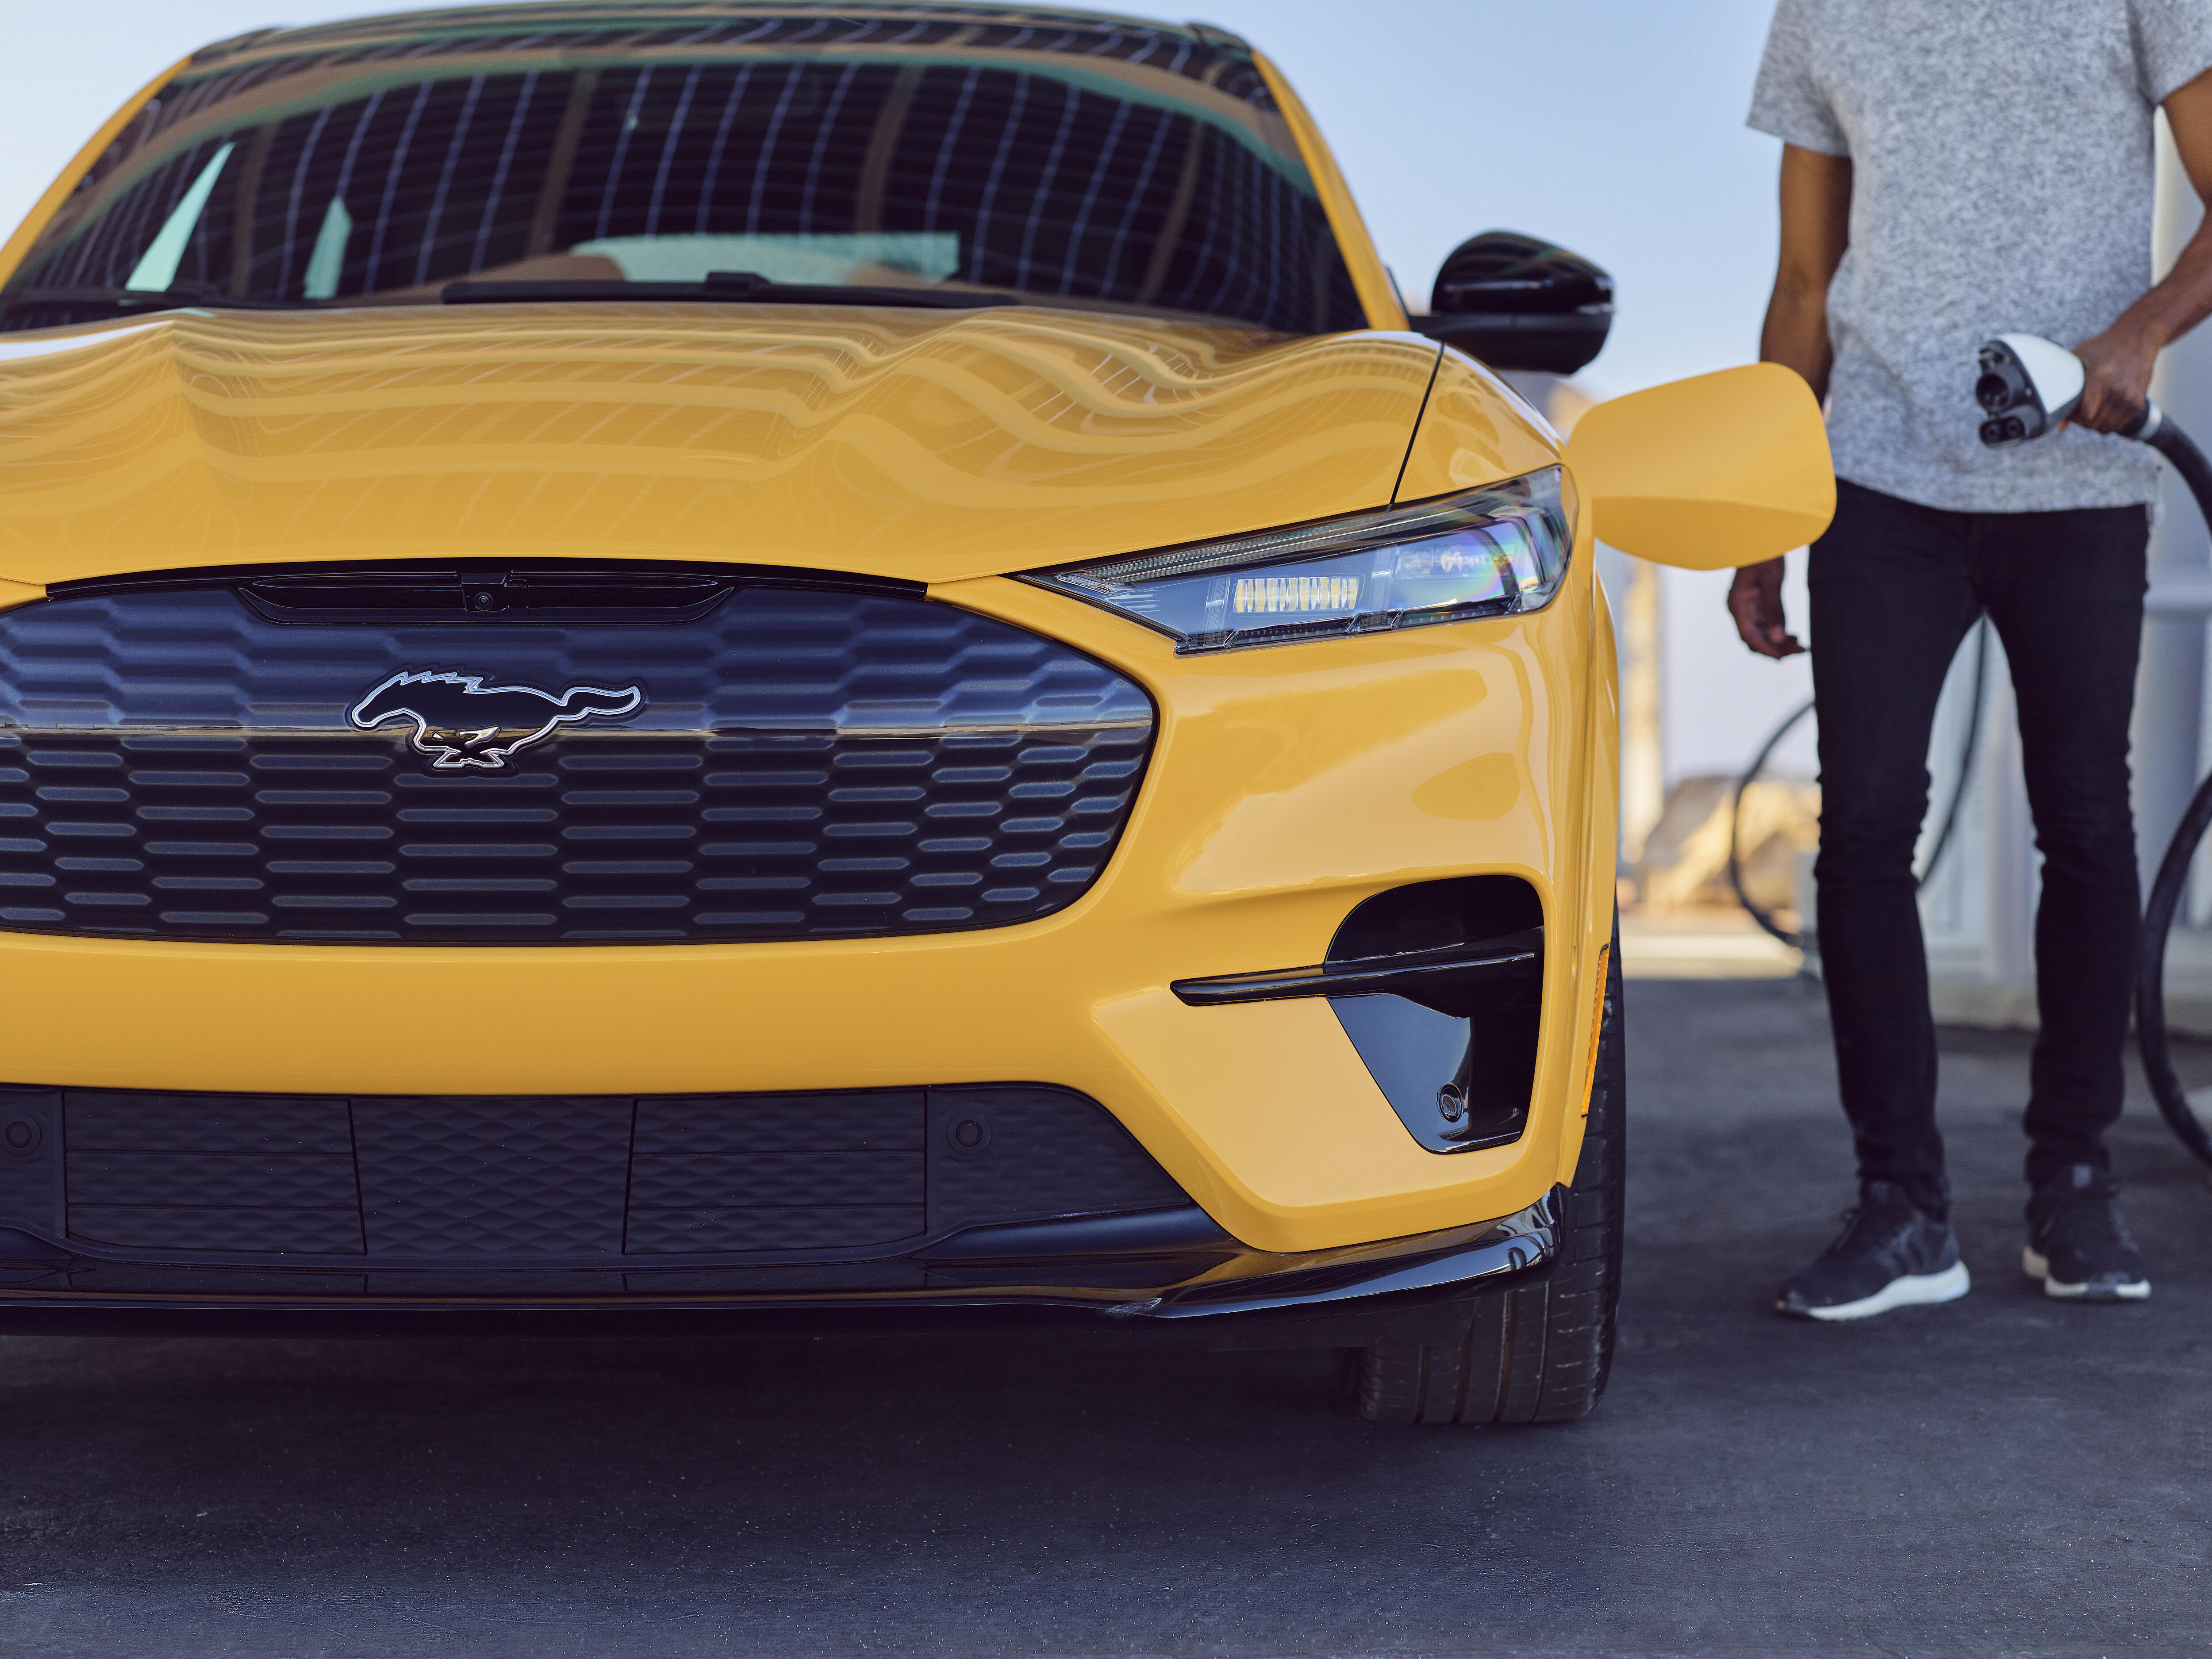 Ford Mustang Mach-E plug-in